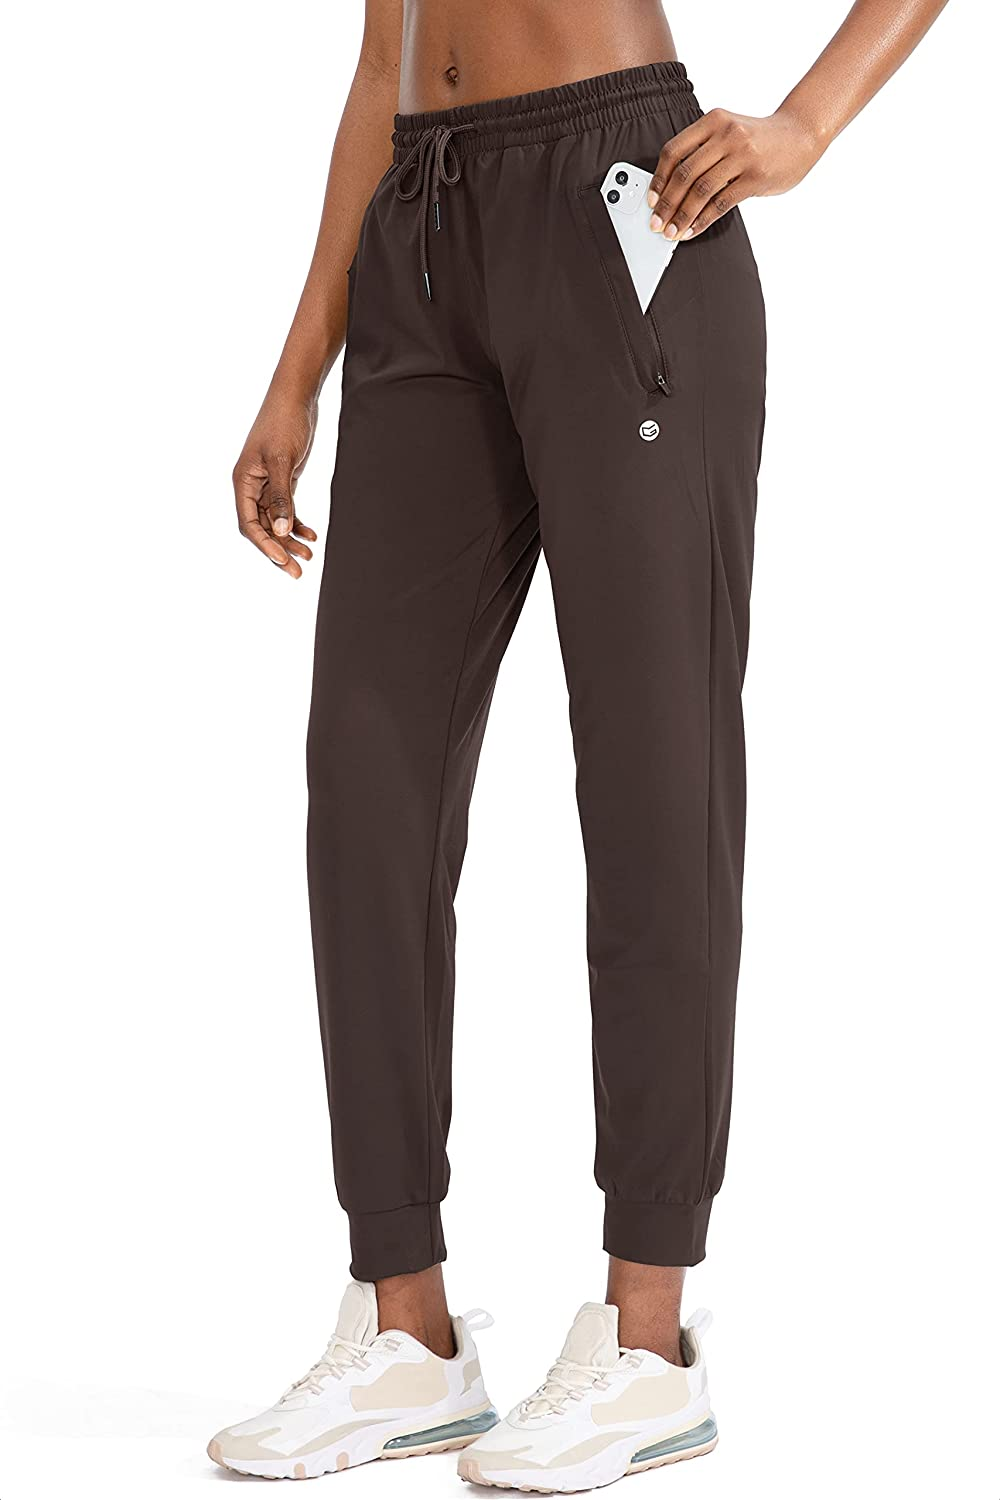 G Gradual Women's Joggers Pants with Zipper Pockets Tapered Running Sweatpants for Women Lounge, Jogging: Clothing